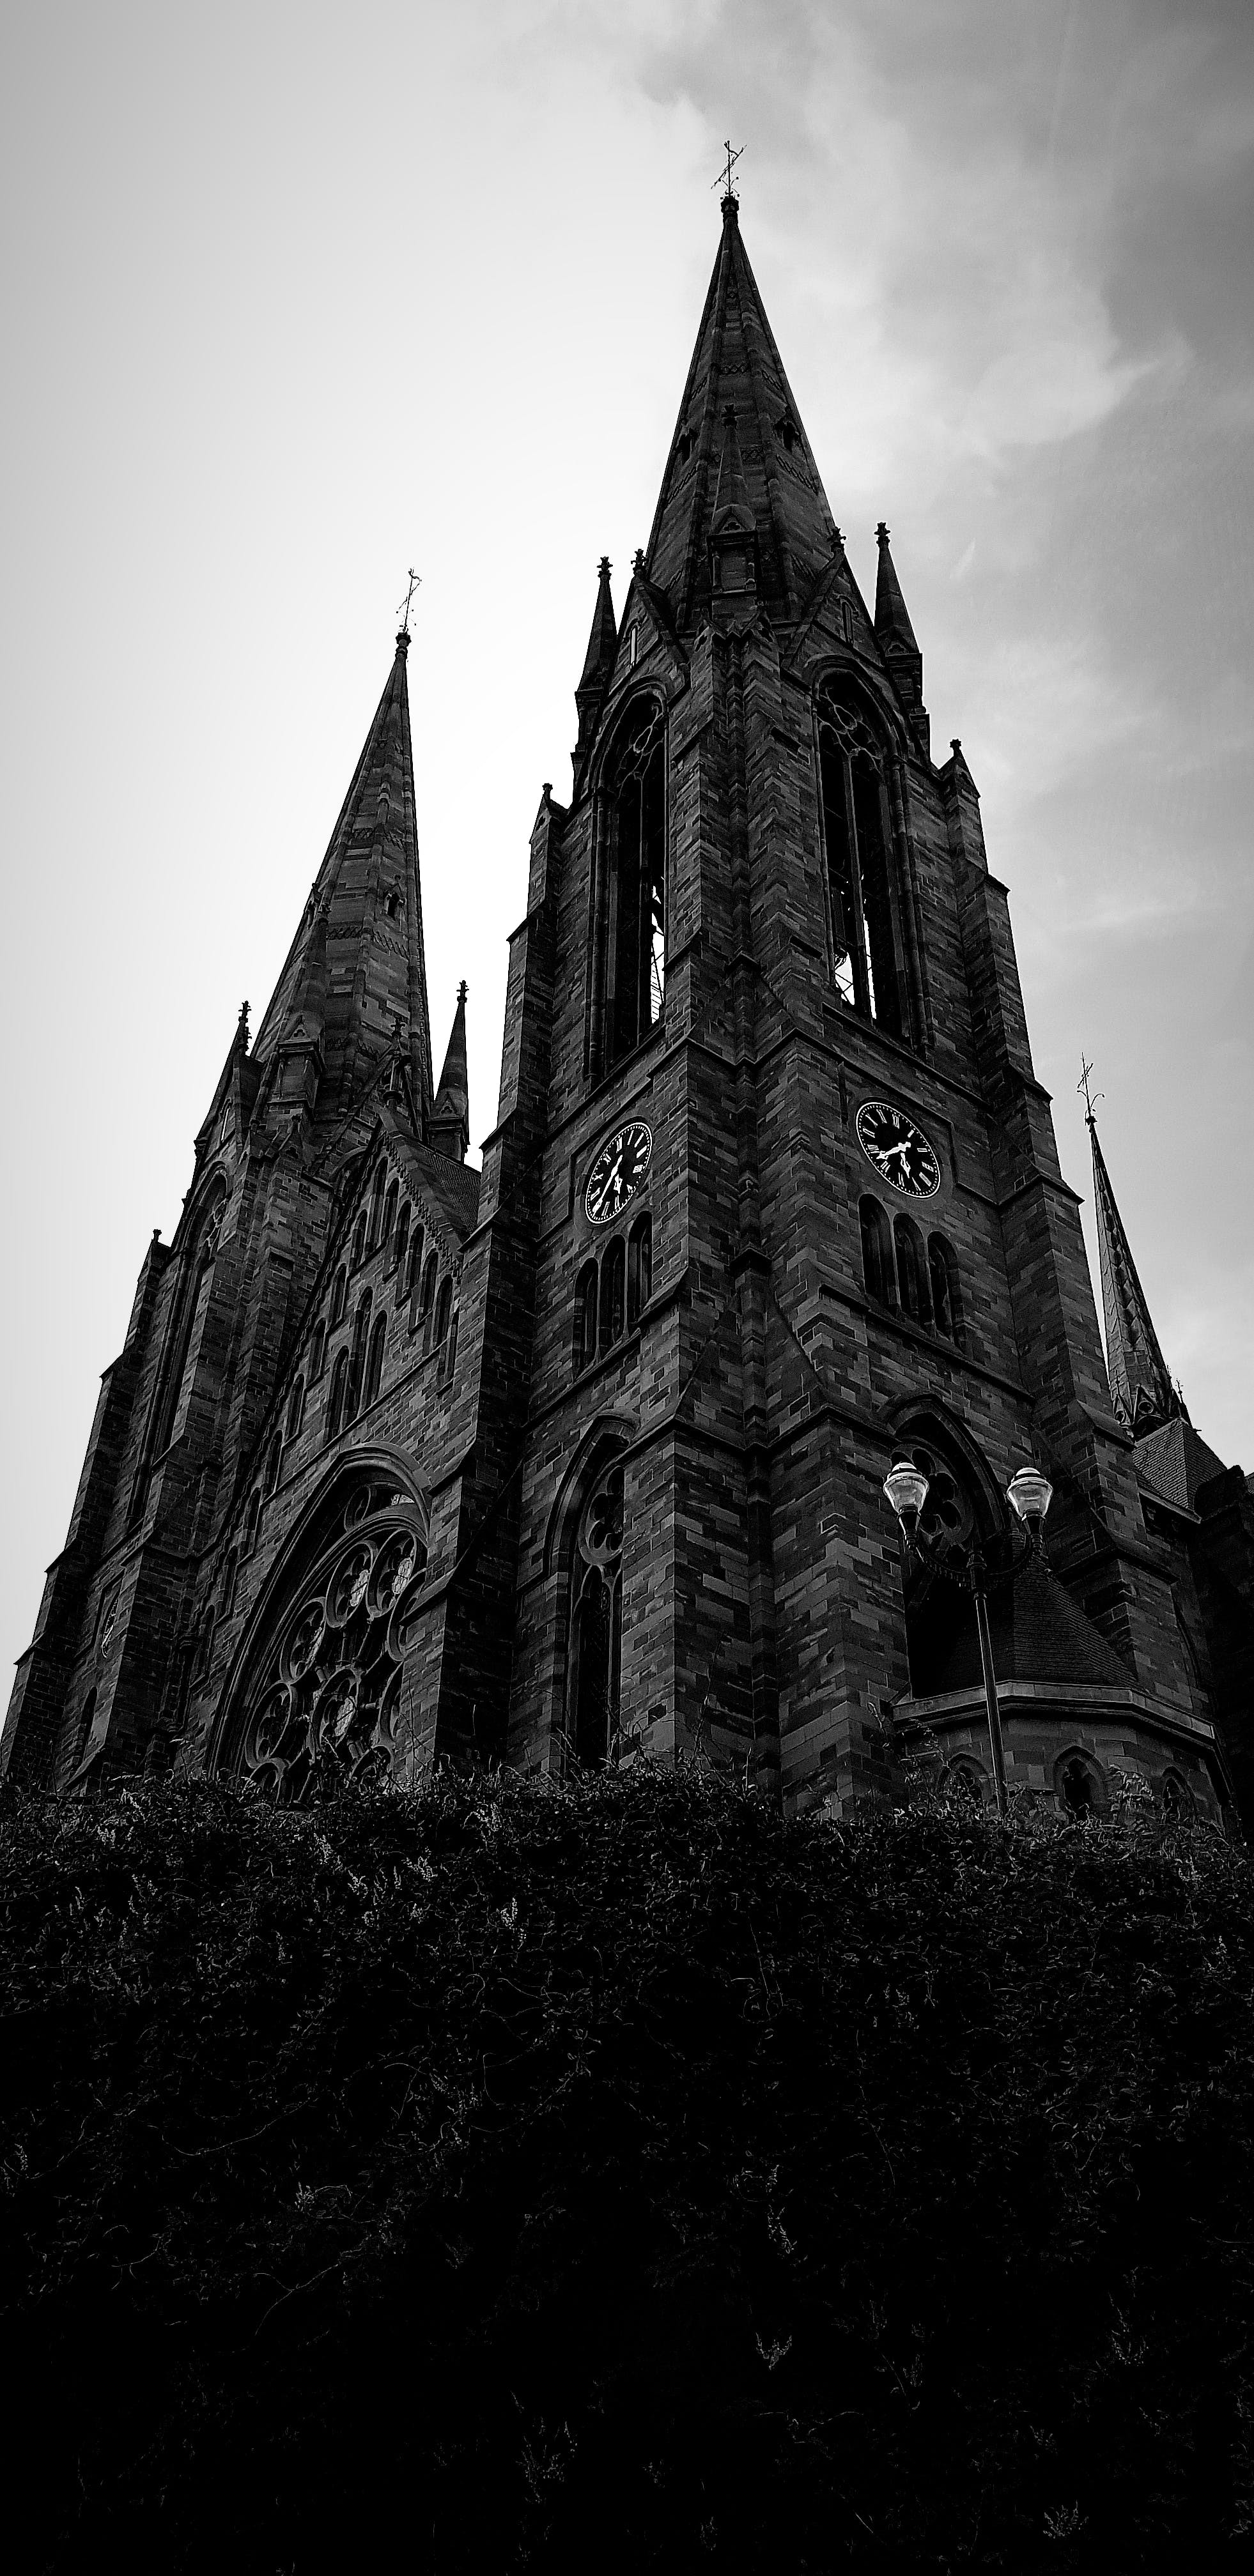 Free stock photo of architecture, black and white, cathedral, mobile